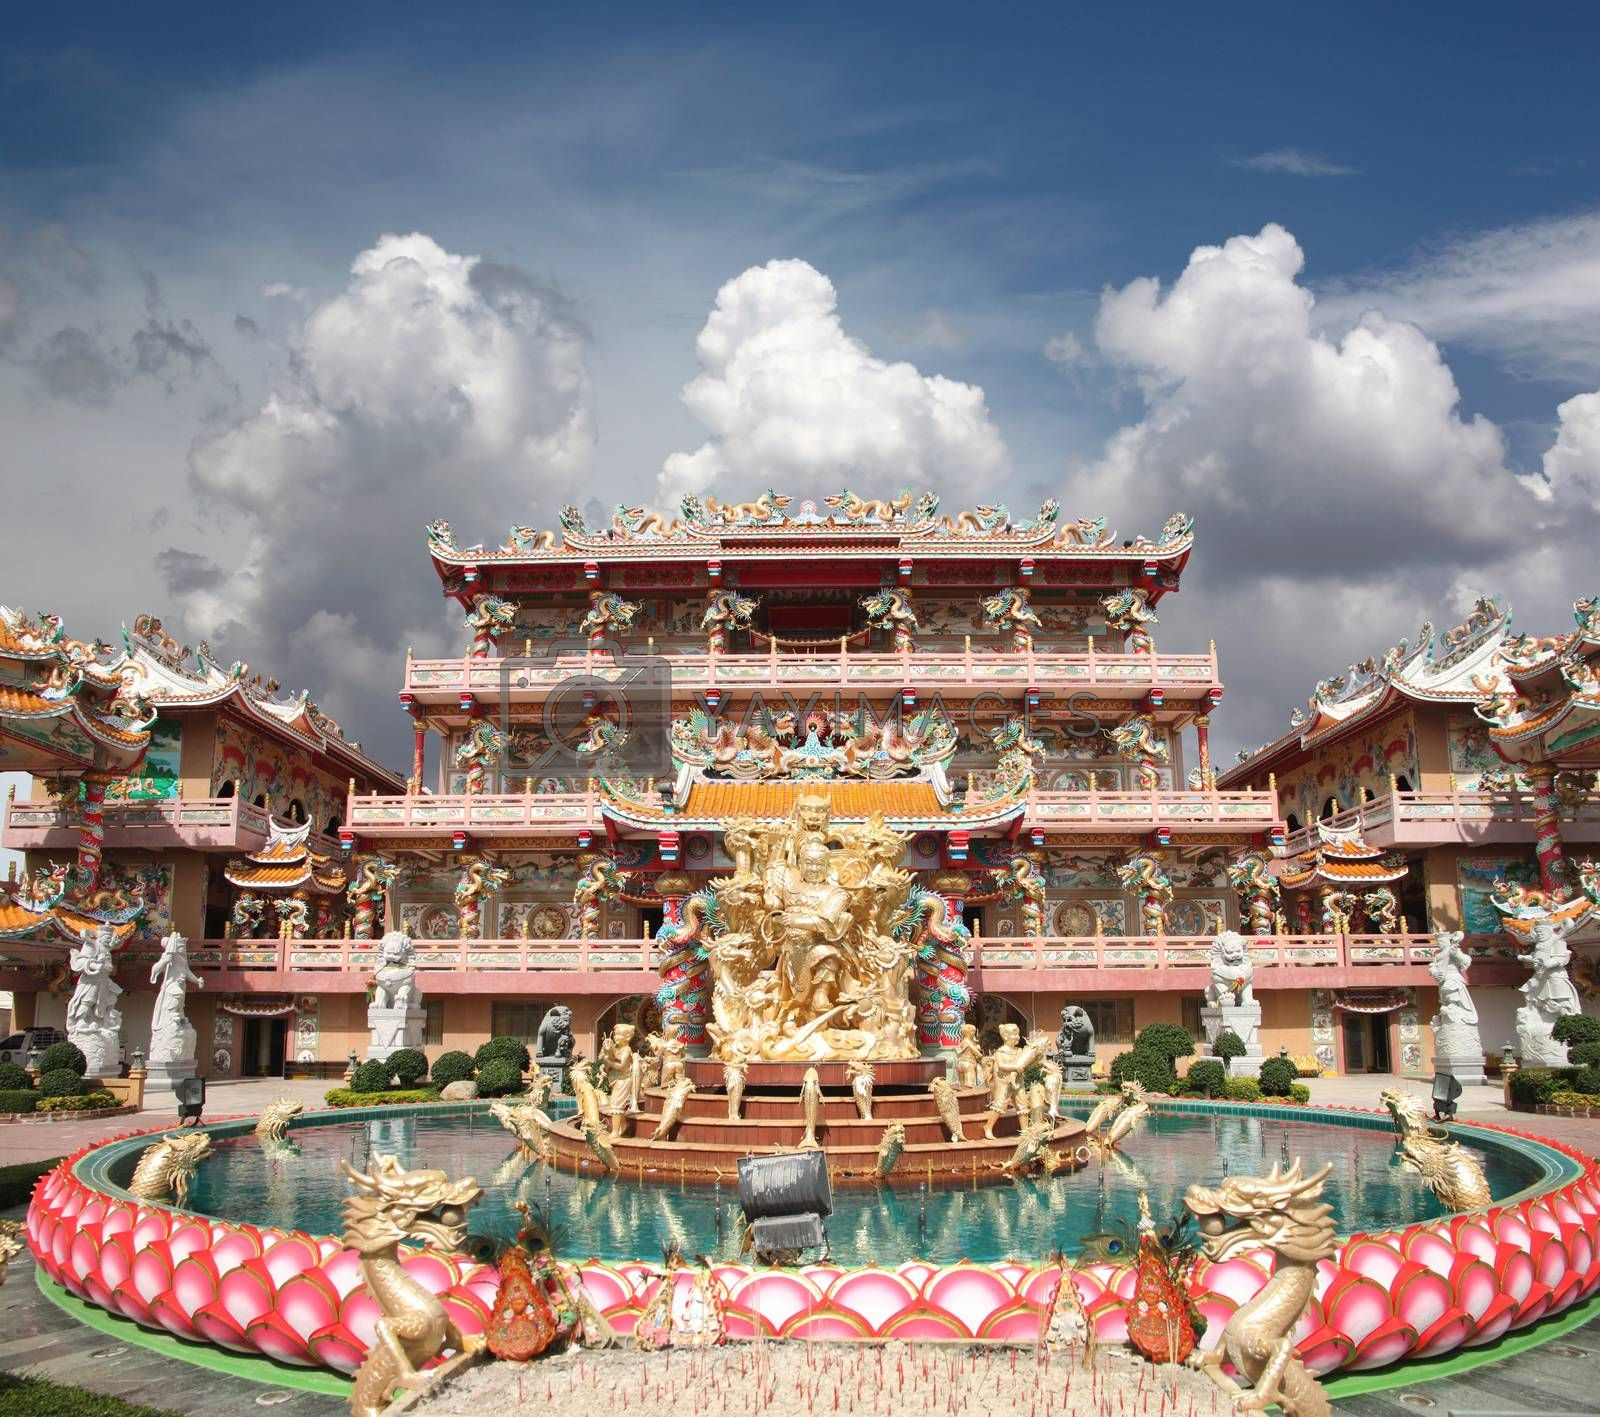 Sculpture in the Chinese Temple on blue sky and white cloud.